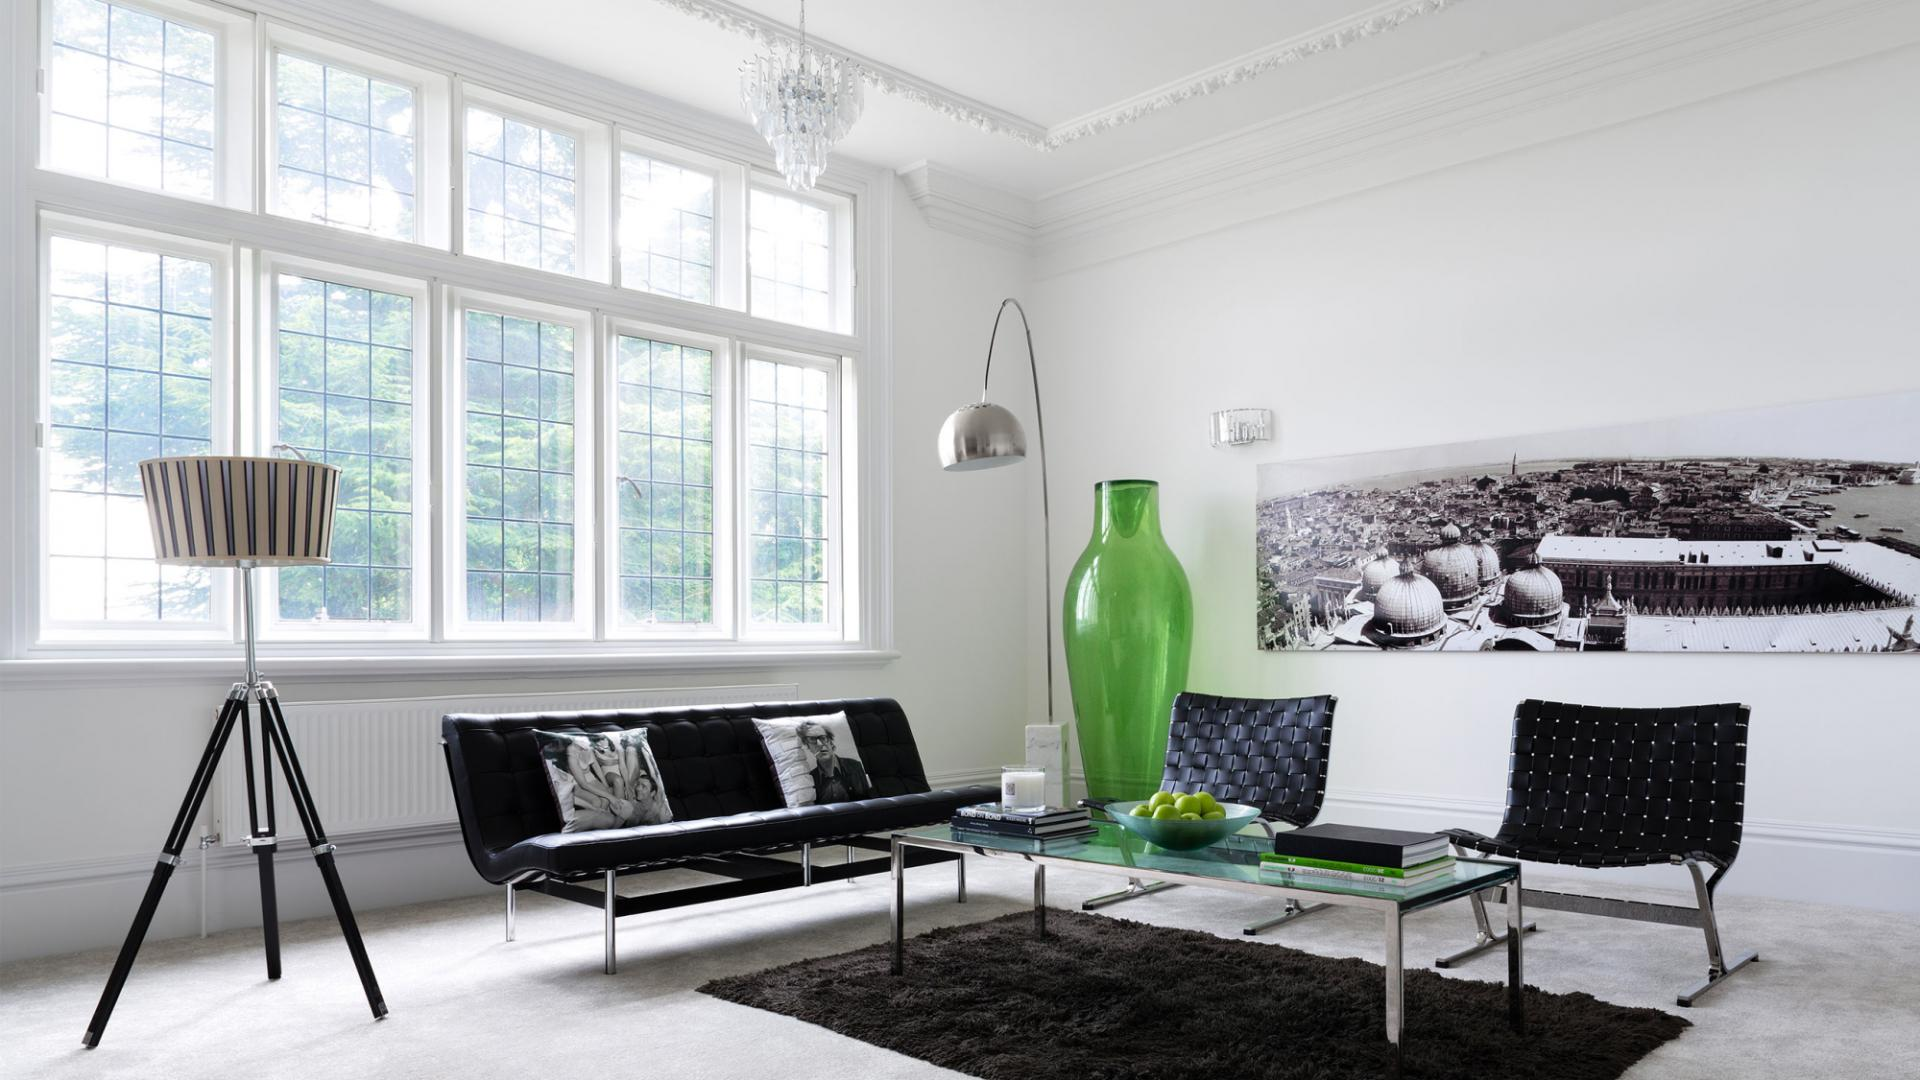 Zoning Living Room's Multiple Functional Areas with Decor and Lighting.  Huge green vase as the decoration in Scandinavian styled living